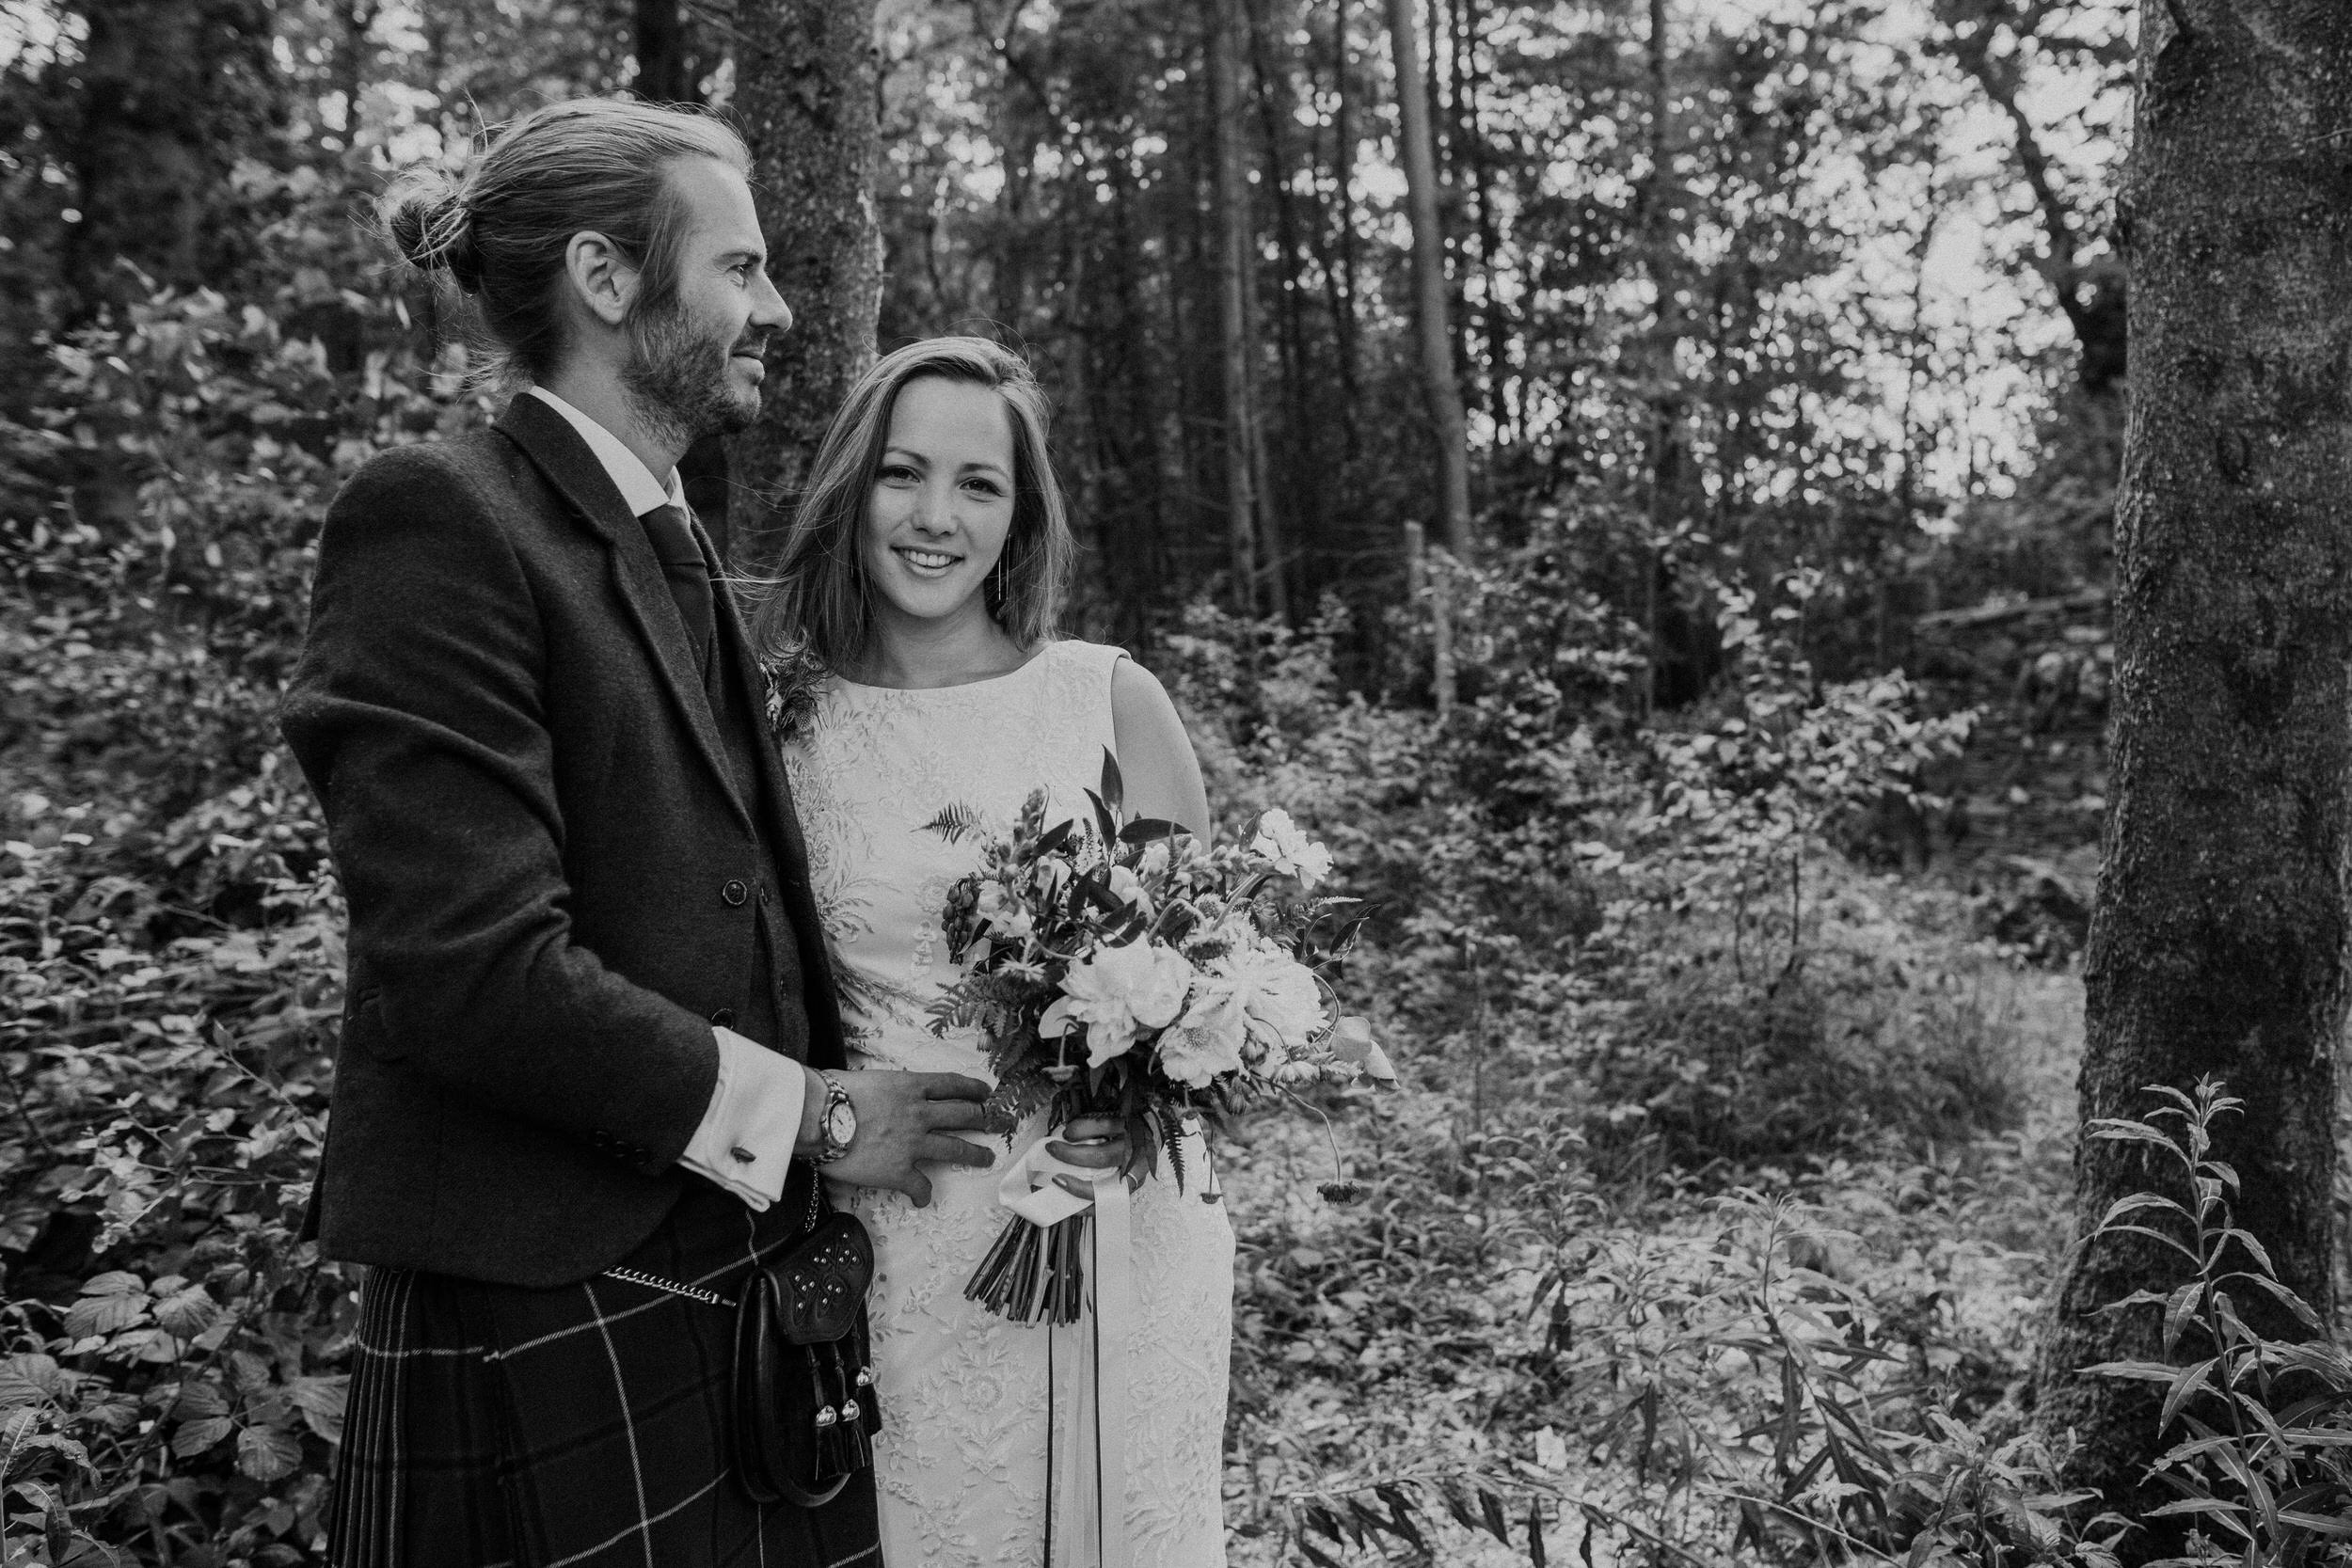 Alternative Quirky Wedding Photographer Scotland Borders Edinburgh 075.jpg